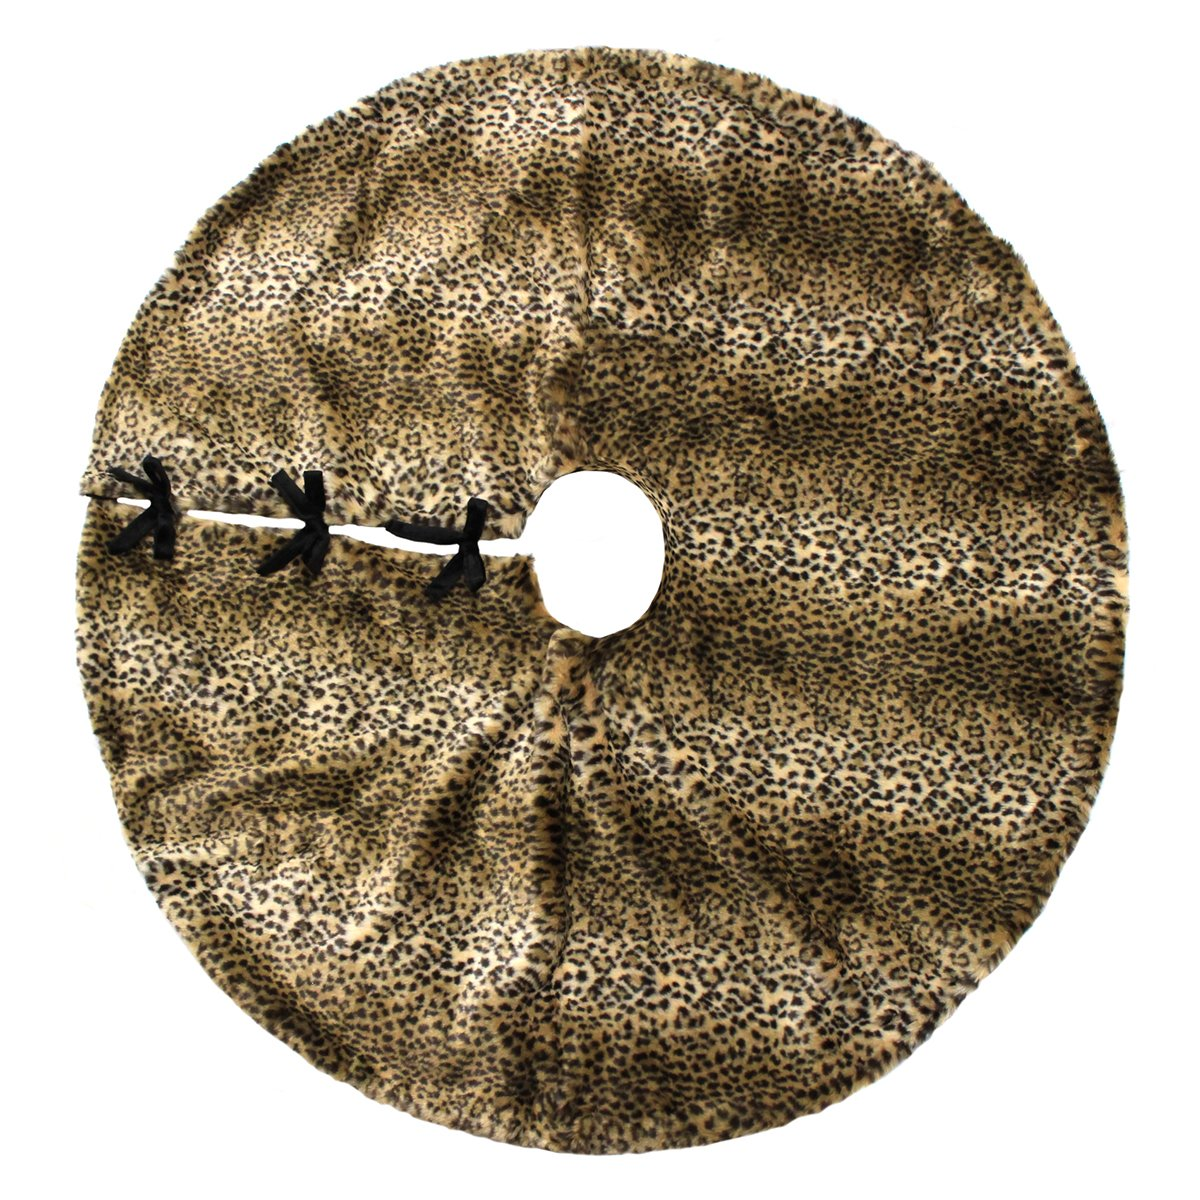 34th & Pine Luxury Plush Faux Fur 52'' Christmas Tree Skirt - Leopard / Cheetah